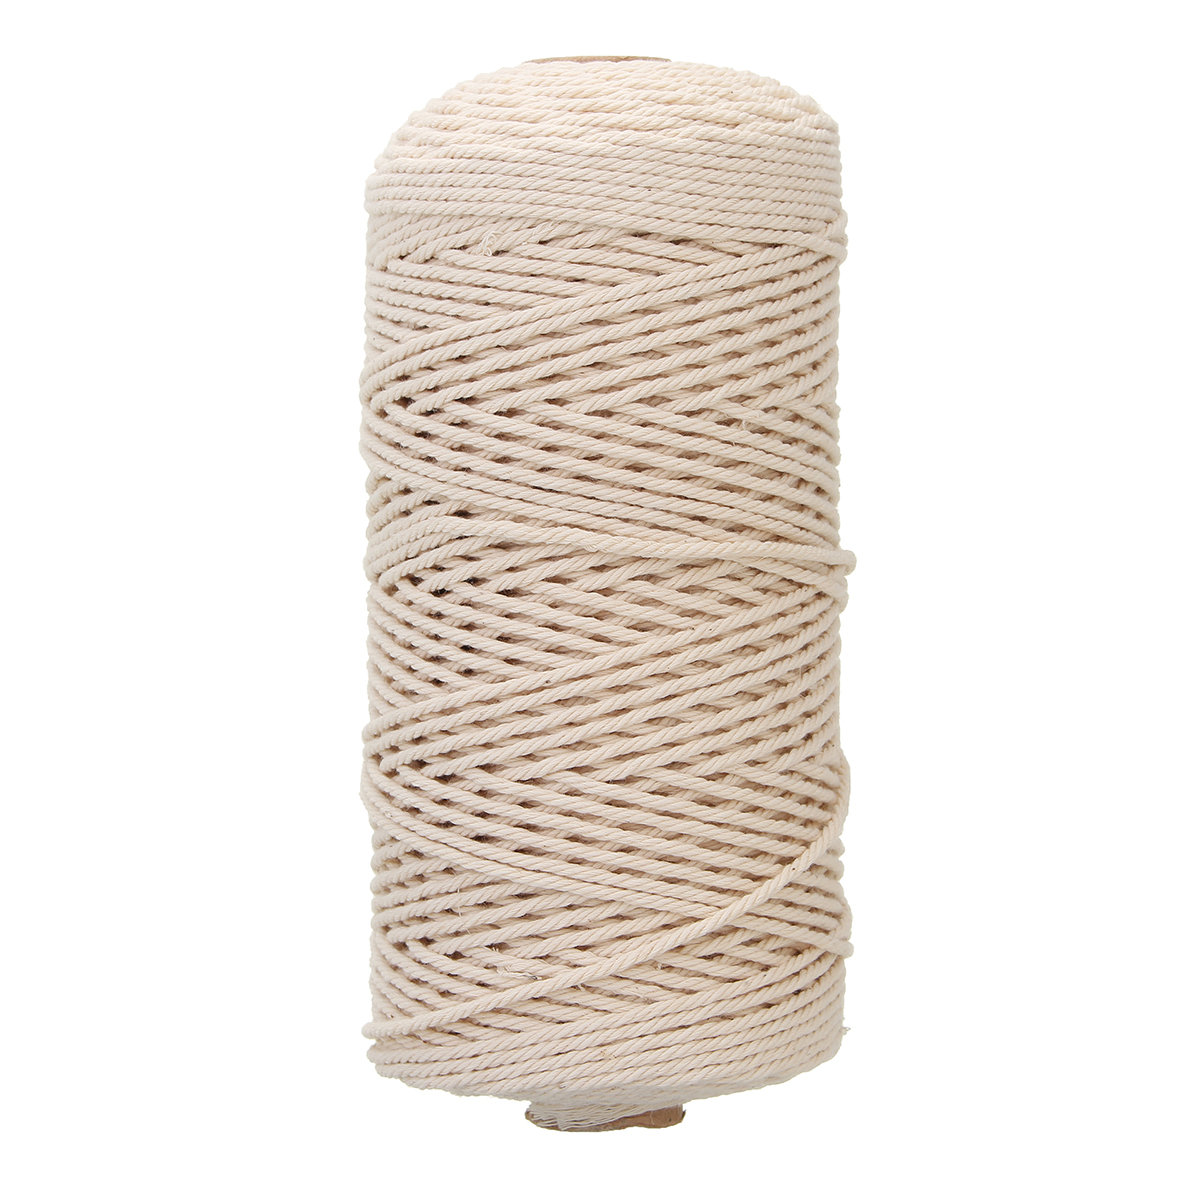 2mm 200M Macrame Cotton Rope Cord DIY Tools Strings for Home Deco Garden